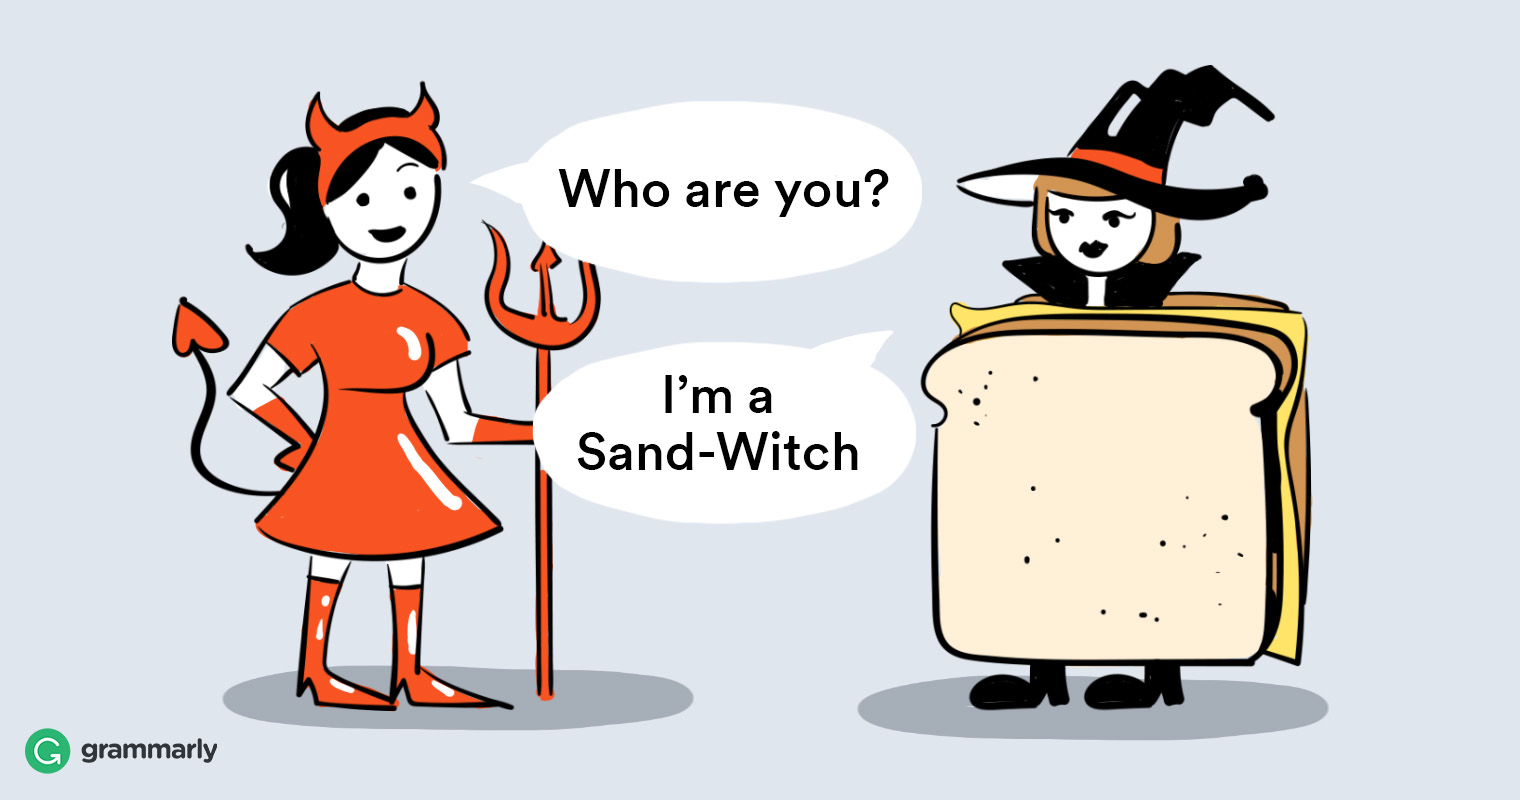 16 Original Pun-Inspired Costumes To Wear This Halloween by Kimberly Joki for Grammarly